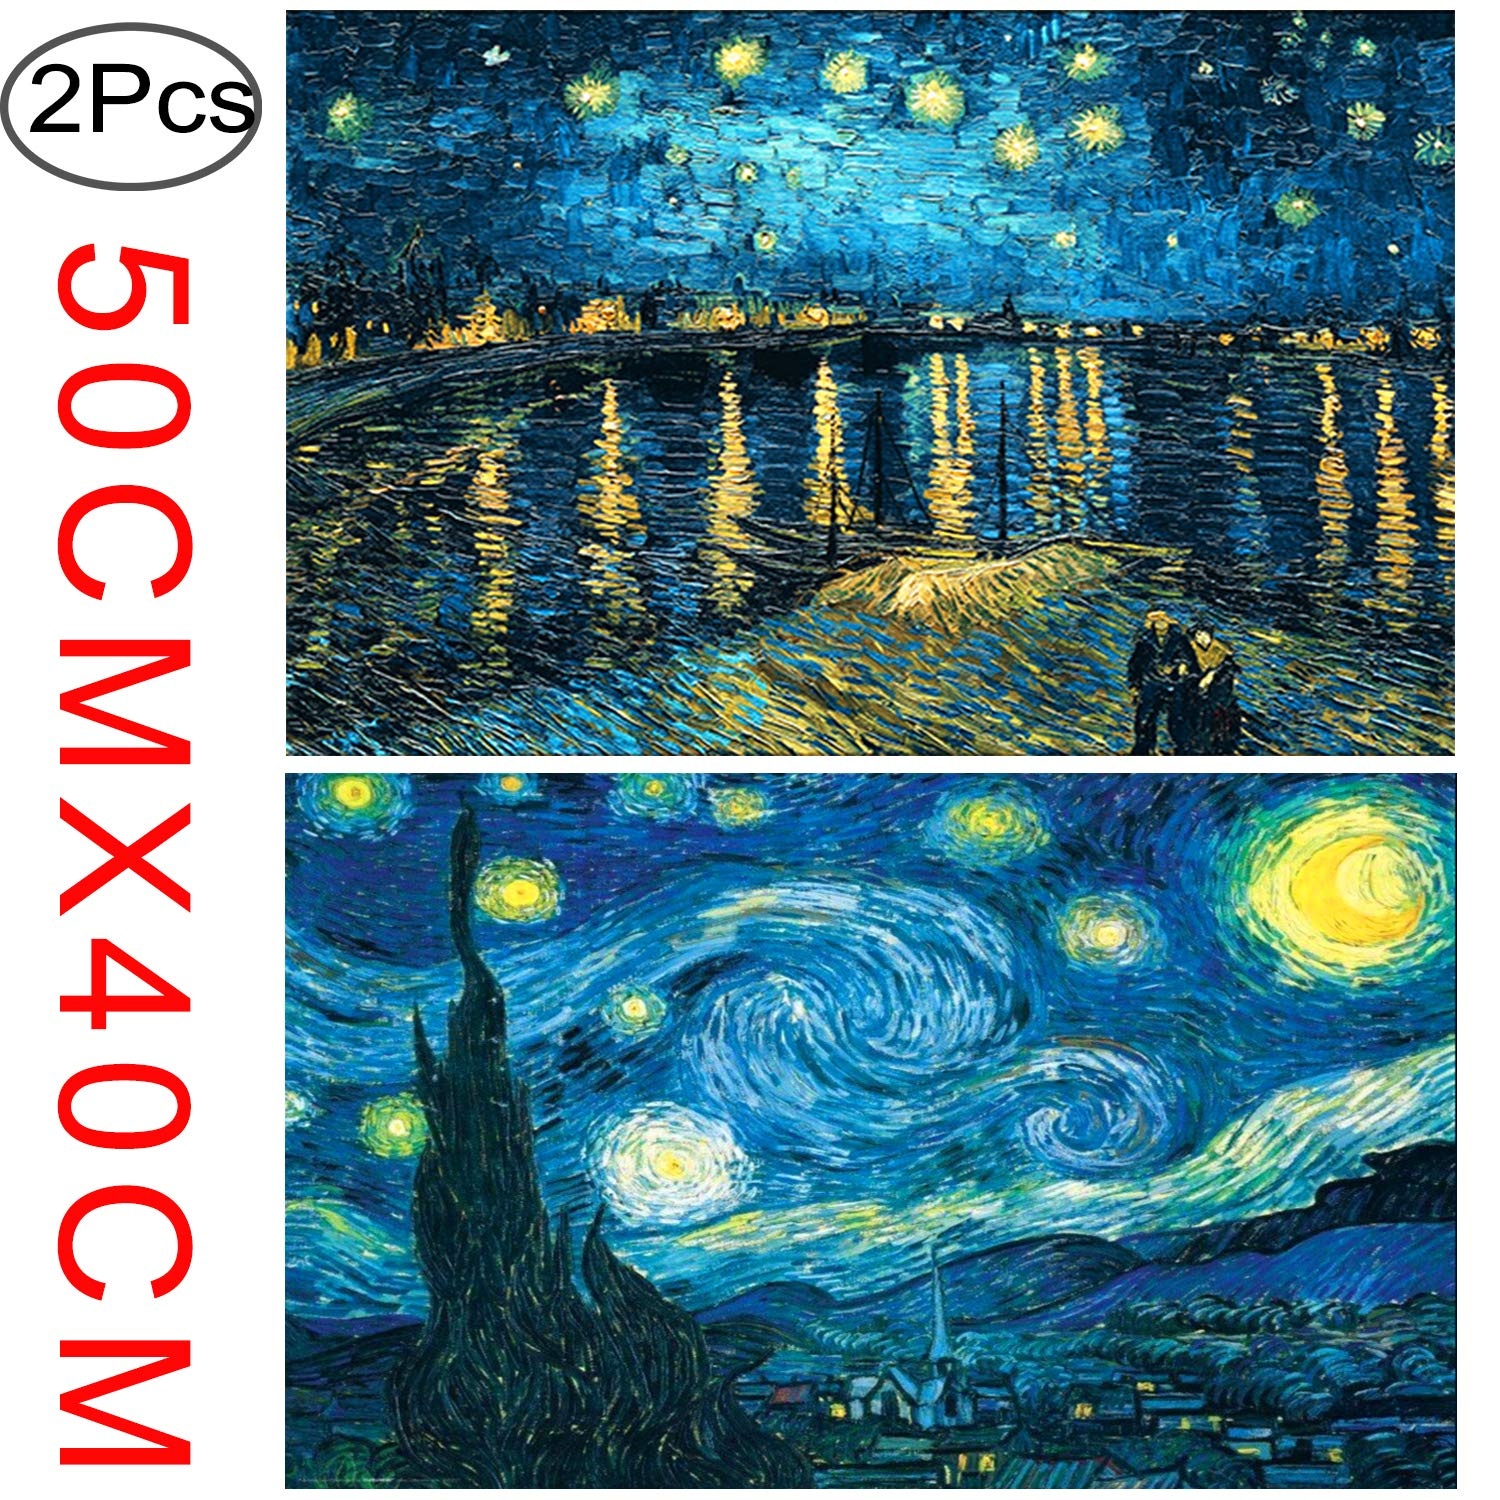 2 Pack 5D DIY Diamond Painting Full Drill Kit Starry Night 5D Full Diamond Embroidery Rhinestone Painting Kit 5D Decorating Wall Stickers, Starry Sky (50 × 40 cm) by Standie